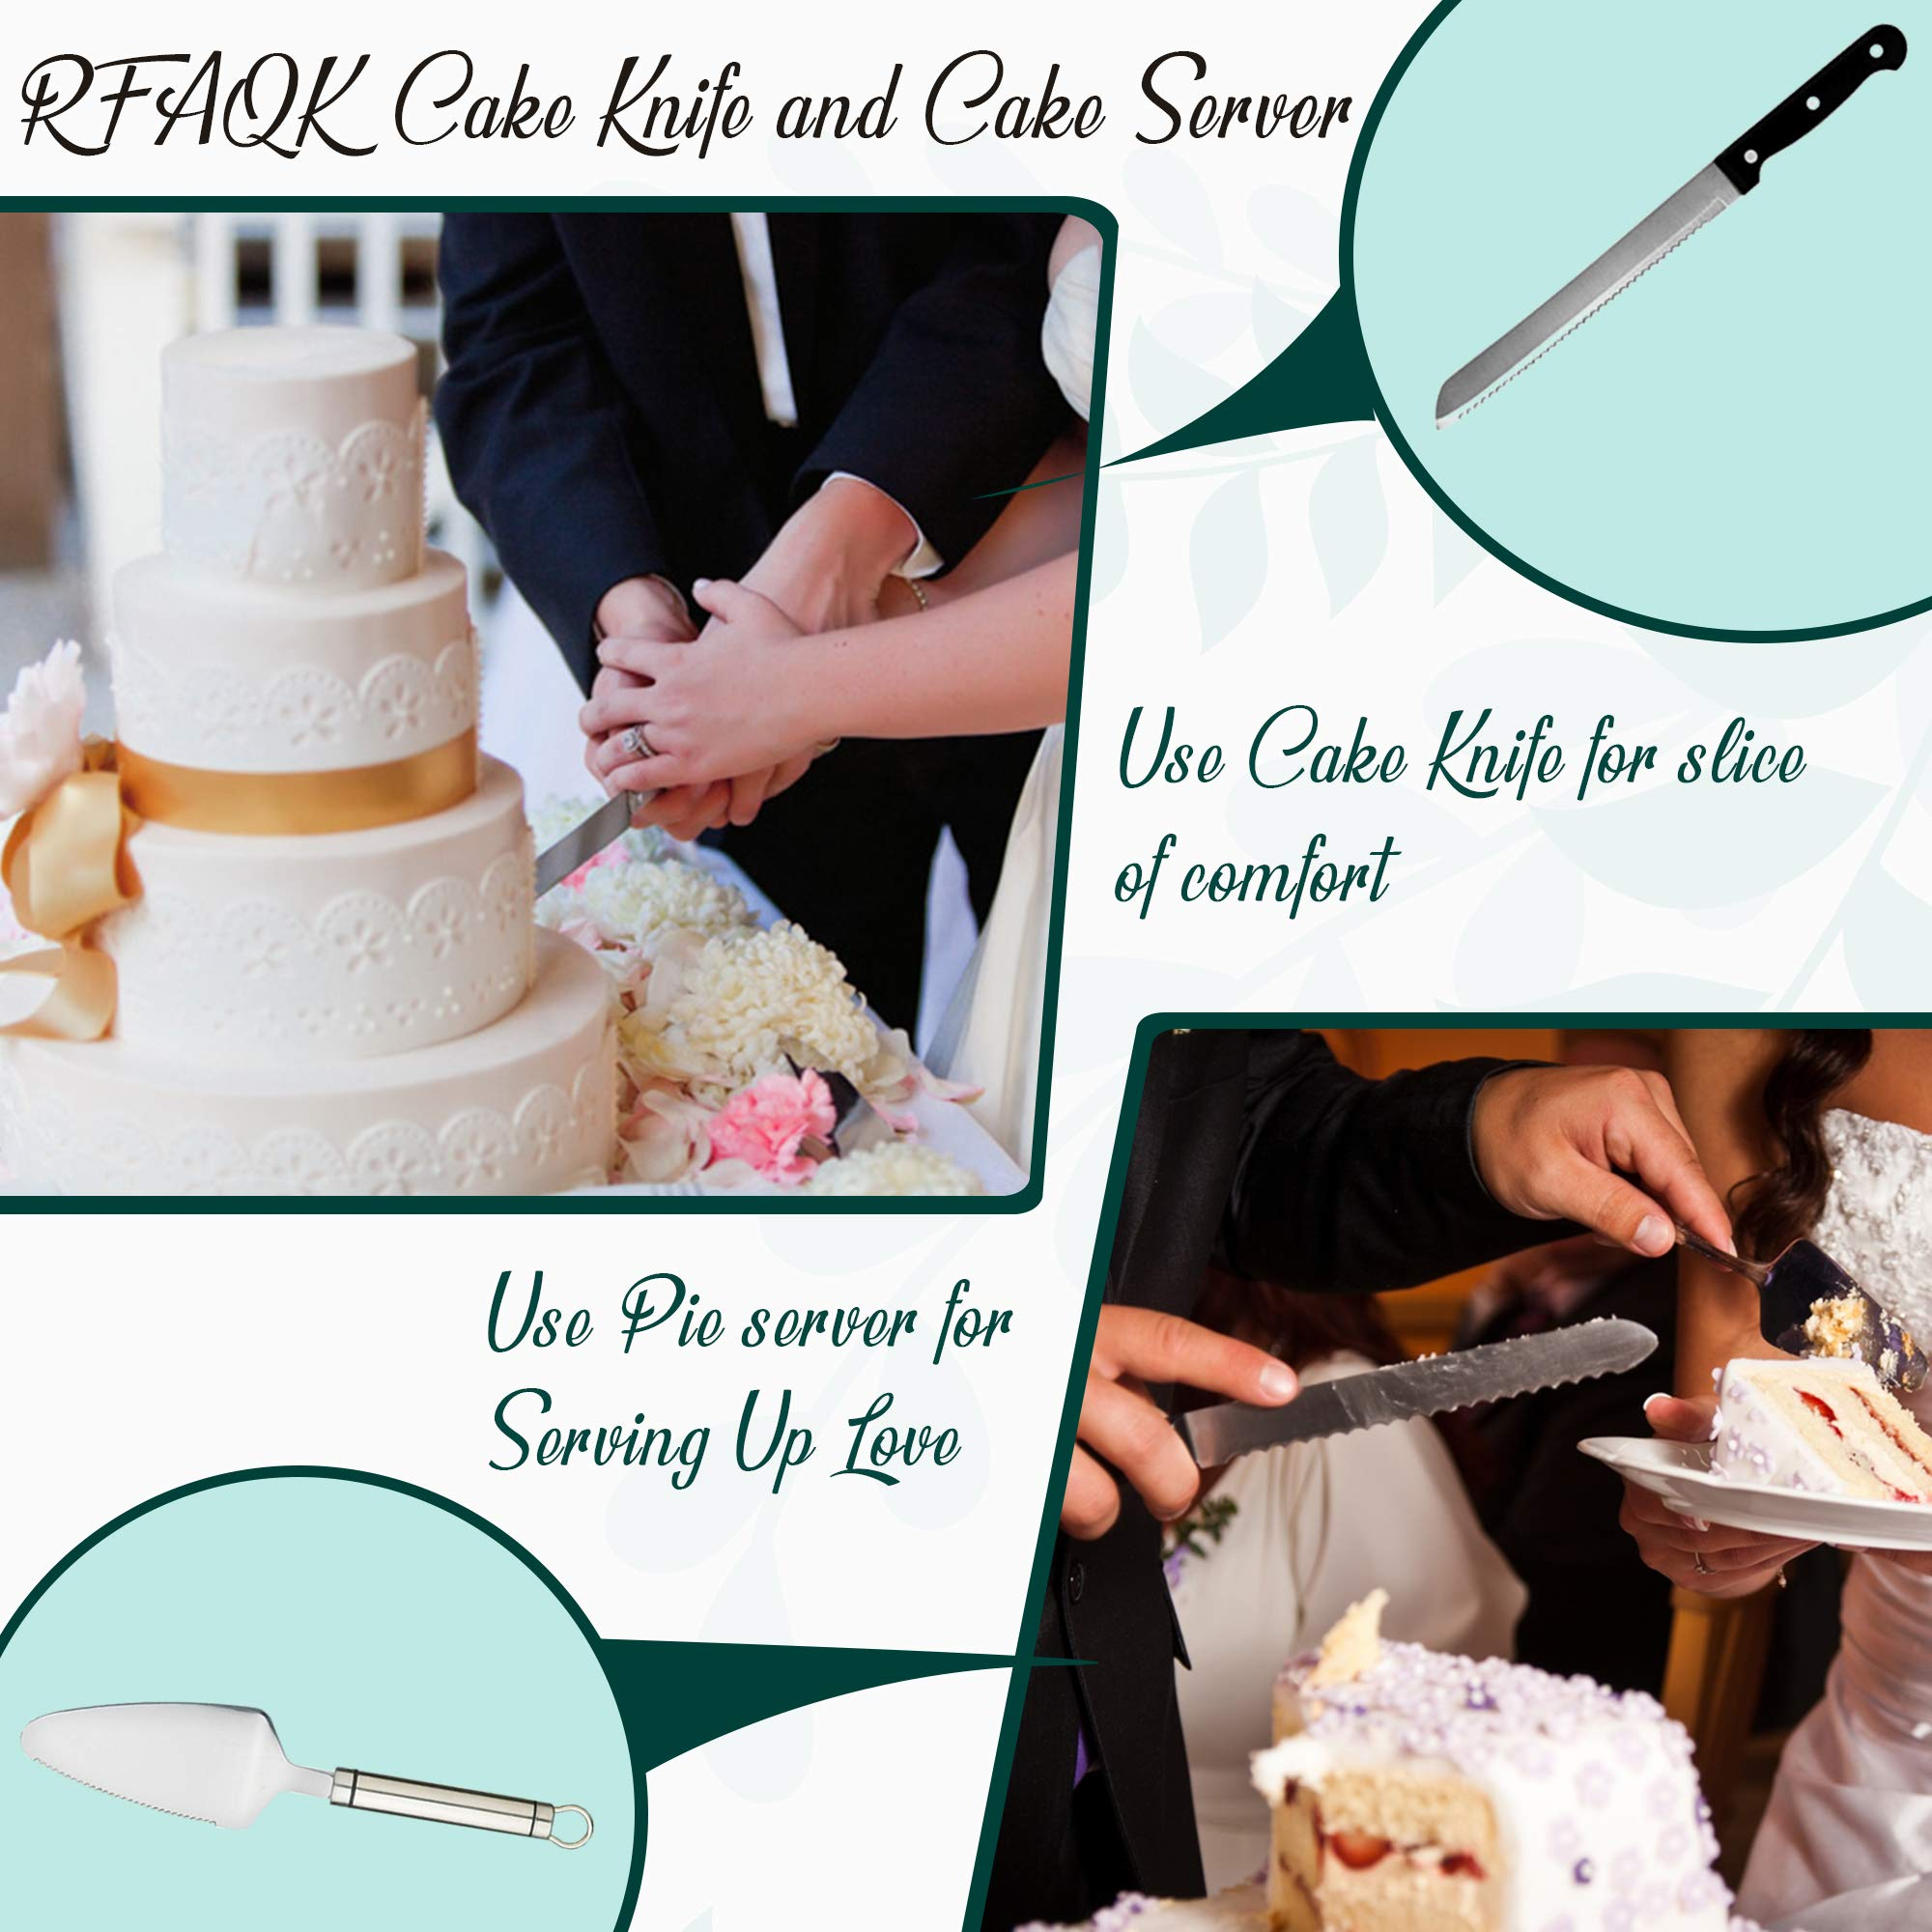 174 PCs Cake Decorating Supplies Kit for Beginners-1 Turntable stand- Cake server & knife set-48 Numbered Easy to use icing tips with pattern chart and E.Book-7 Russian Piping nozzles -2 Spatulas by RFAQK (Image #6)